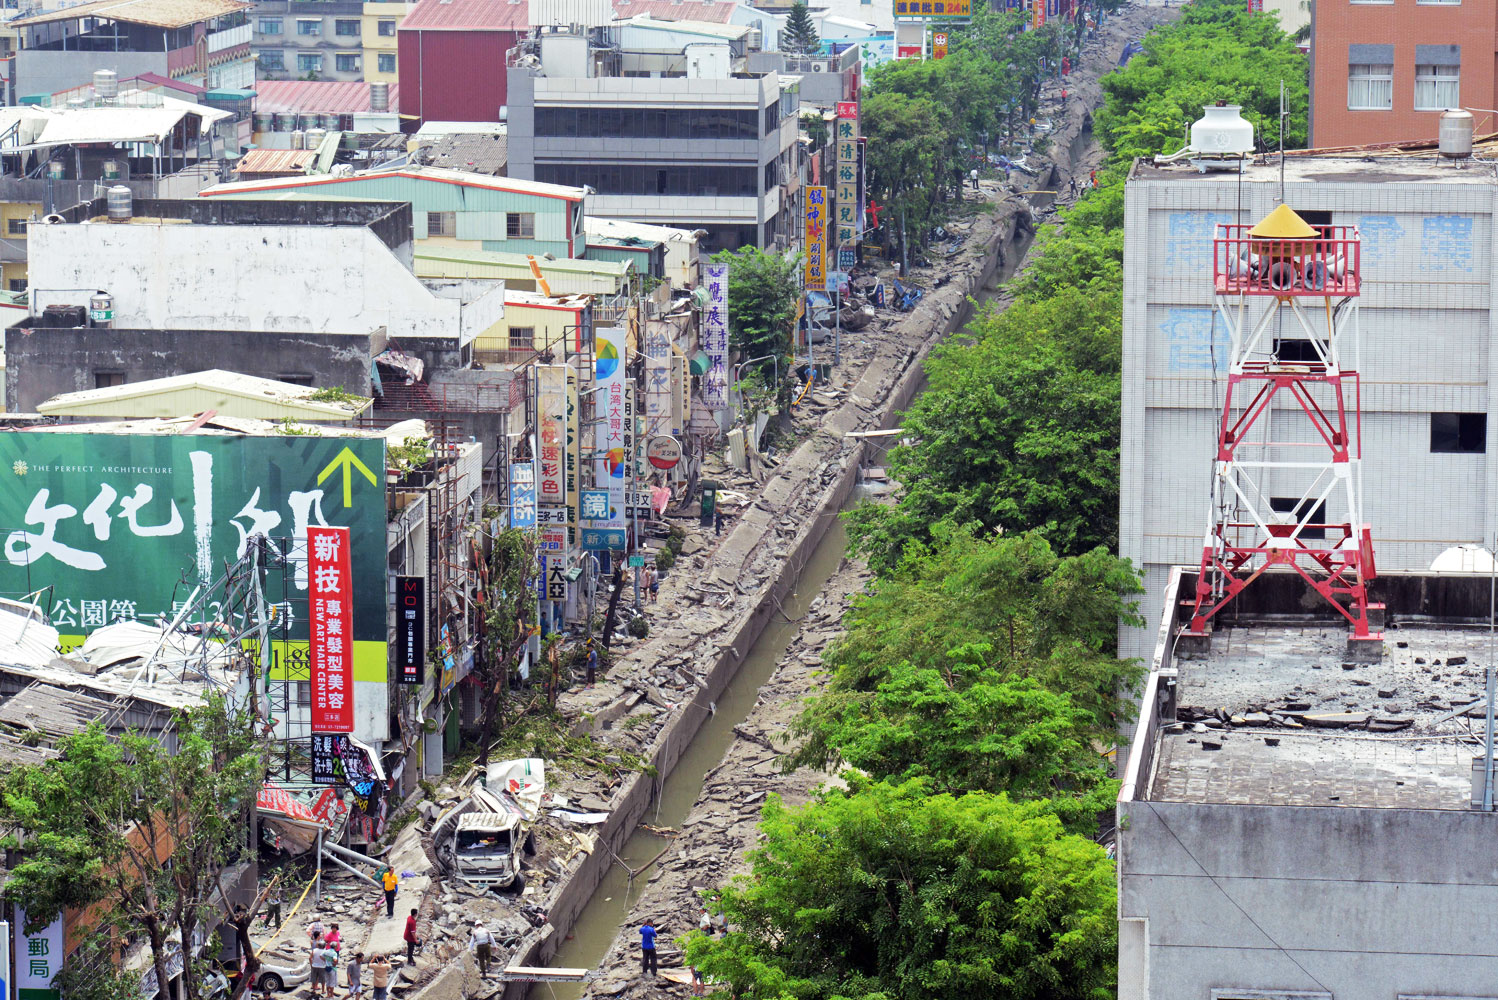 The damaged road after the gas explosions in southern kaohsiung on August 1, 2014.